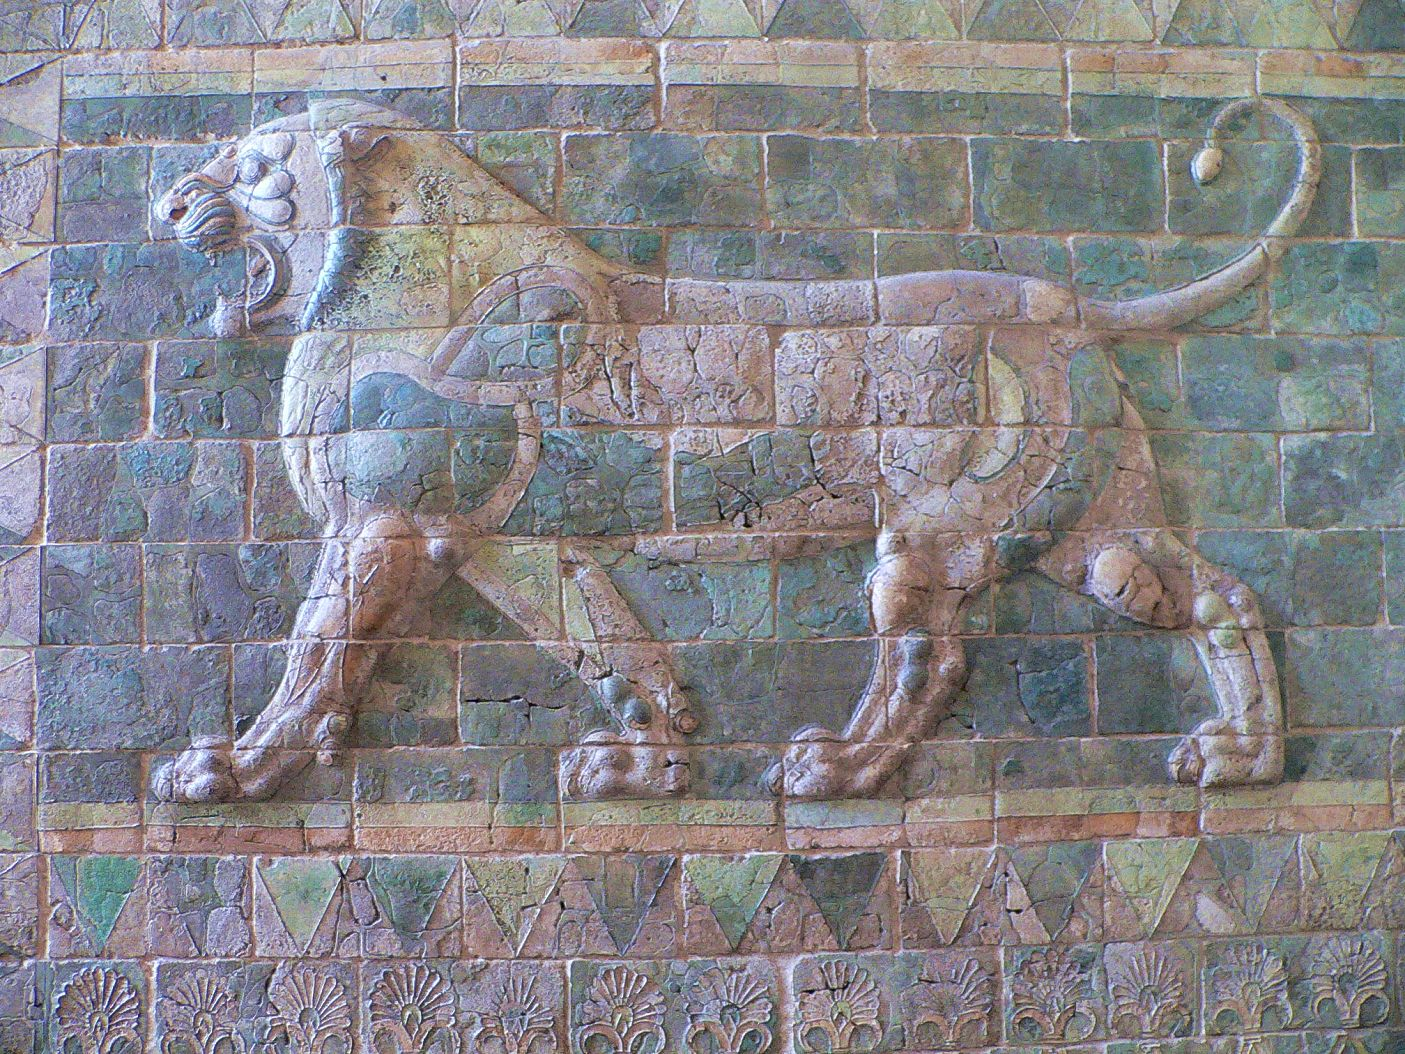 Ancient Persian, Lion Frieze from the Palace of Darius I, c 510 BC